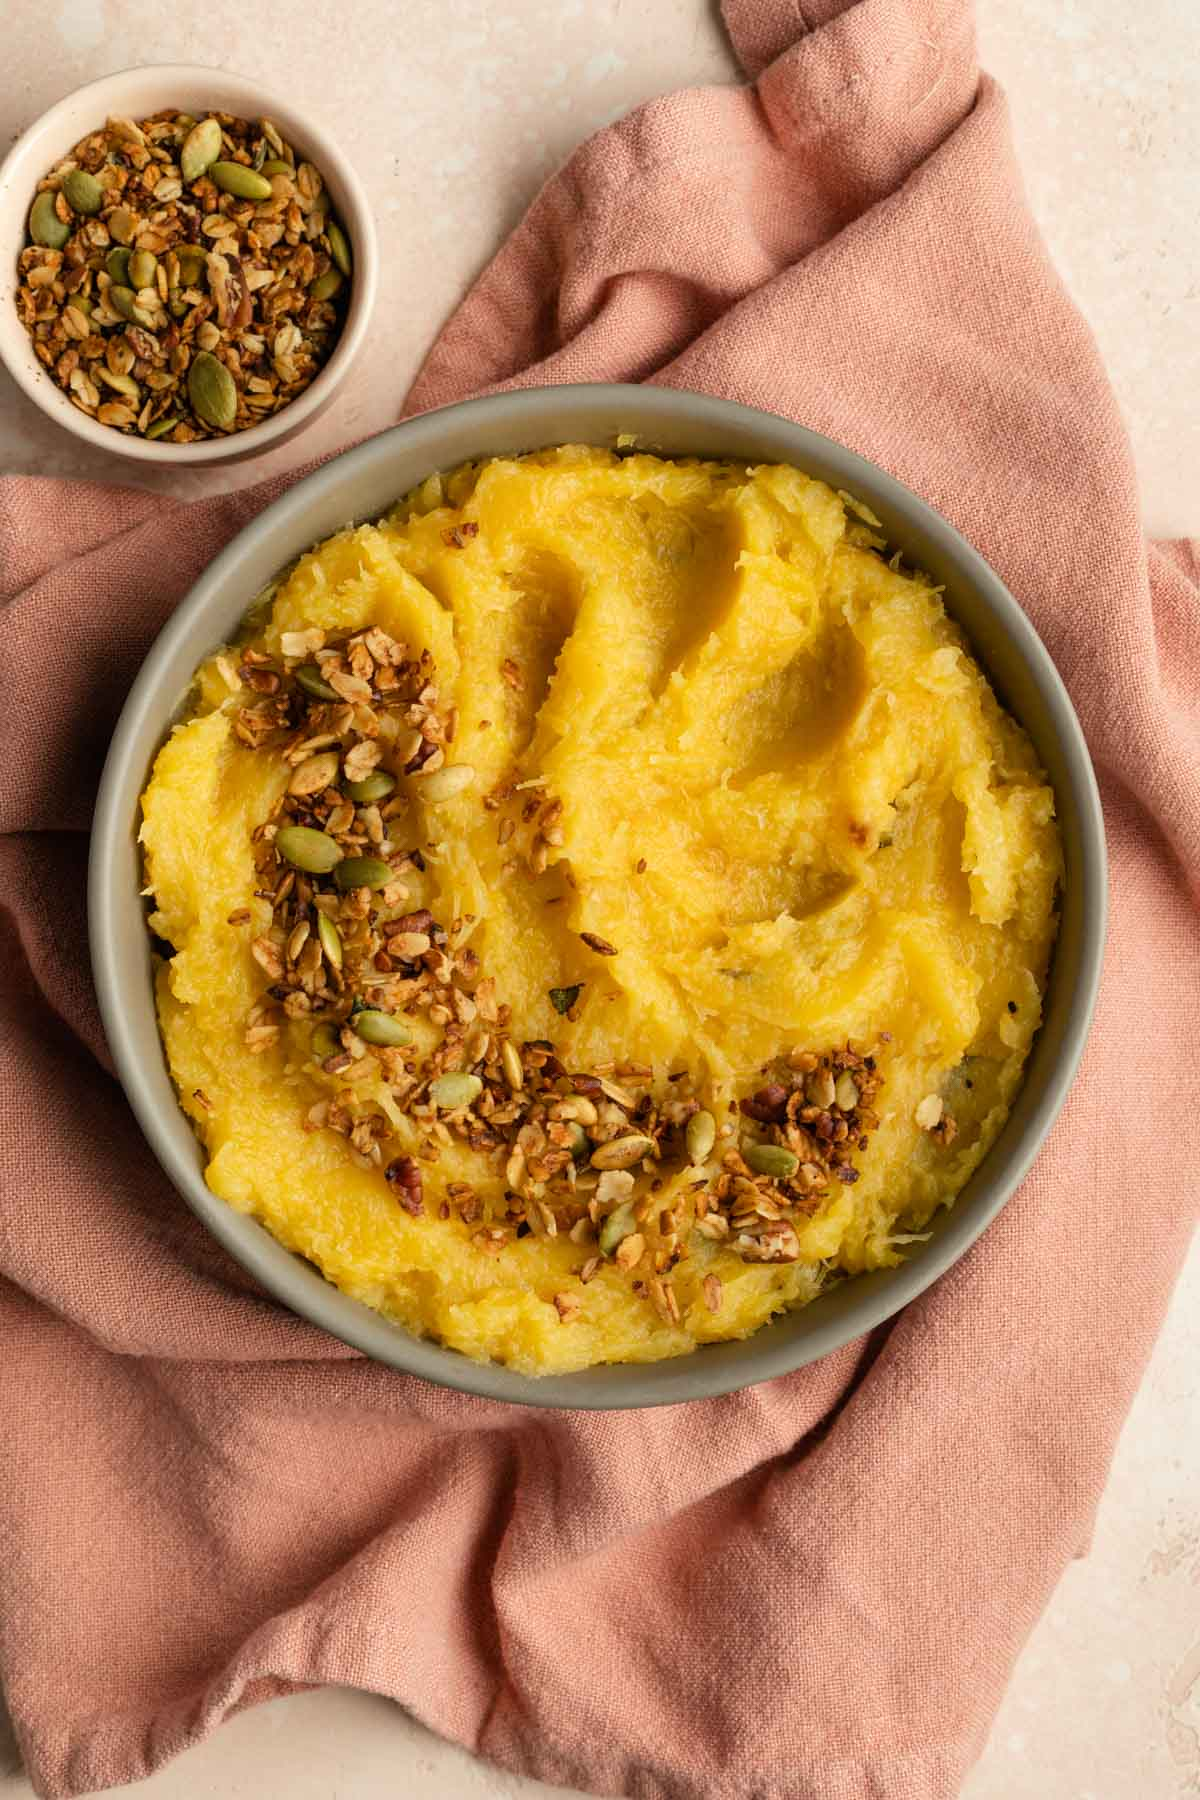 Acorn squash mash in a beige bowl and topped with savoury granola.